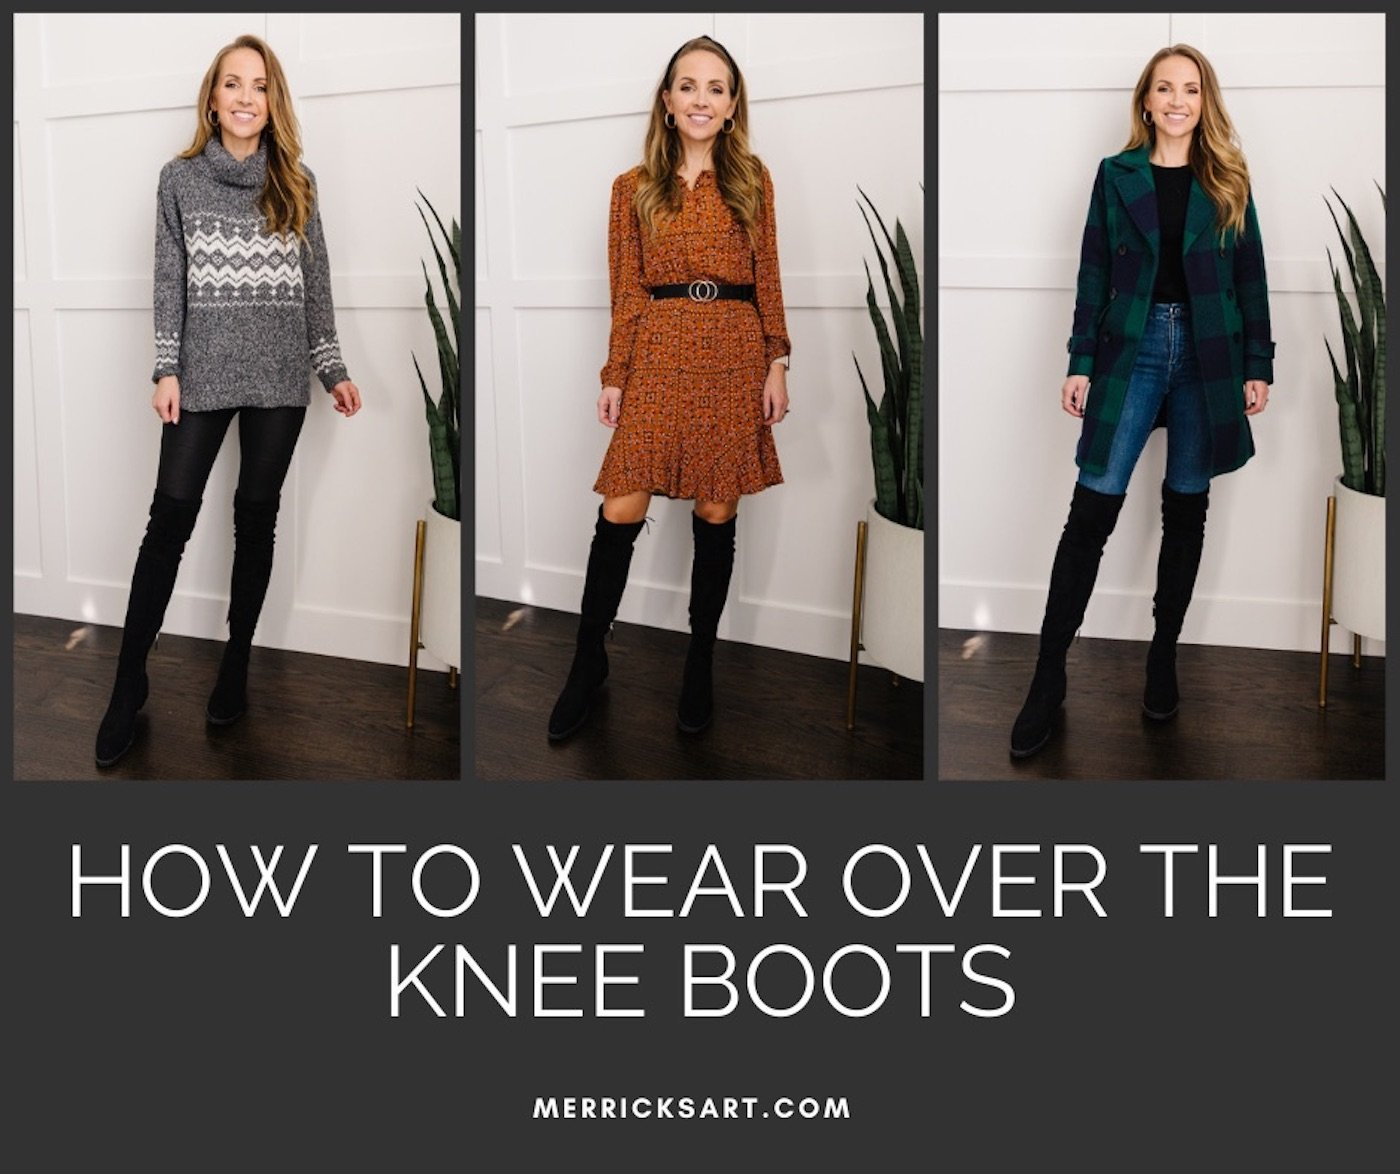 3 ways to wear over the knee boots